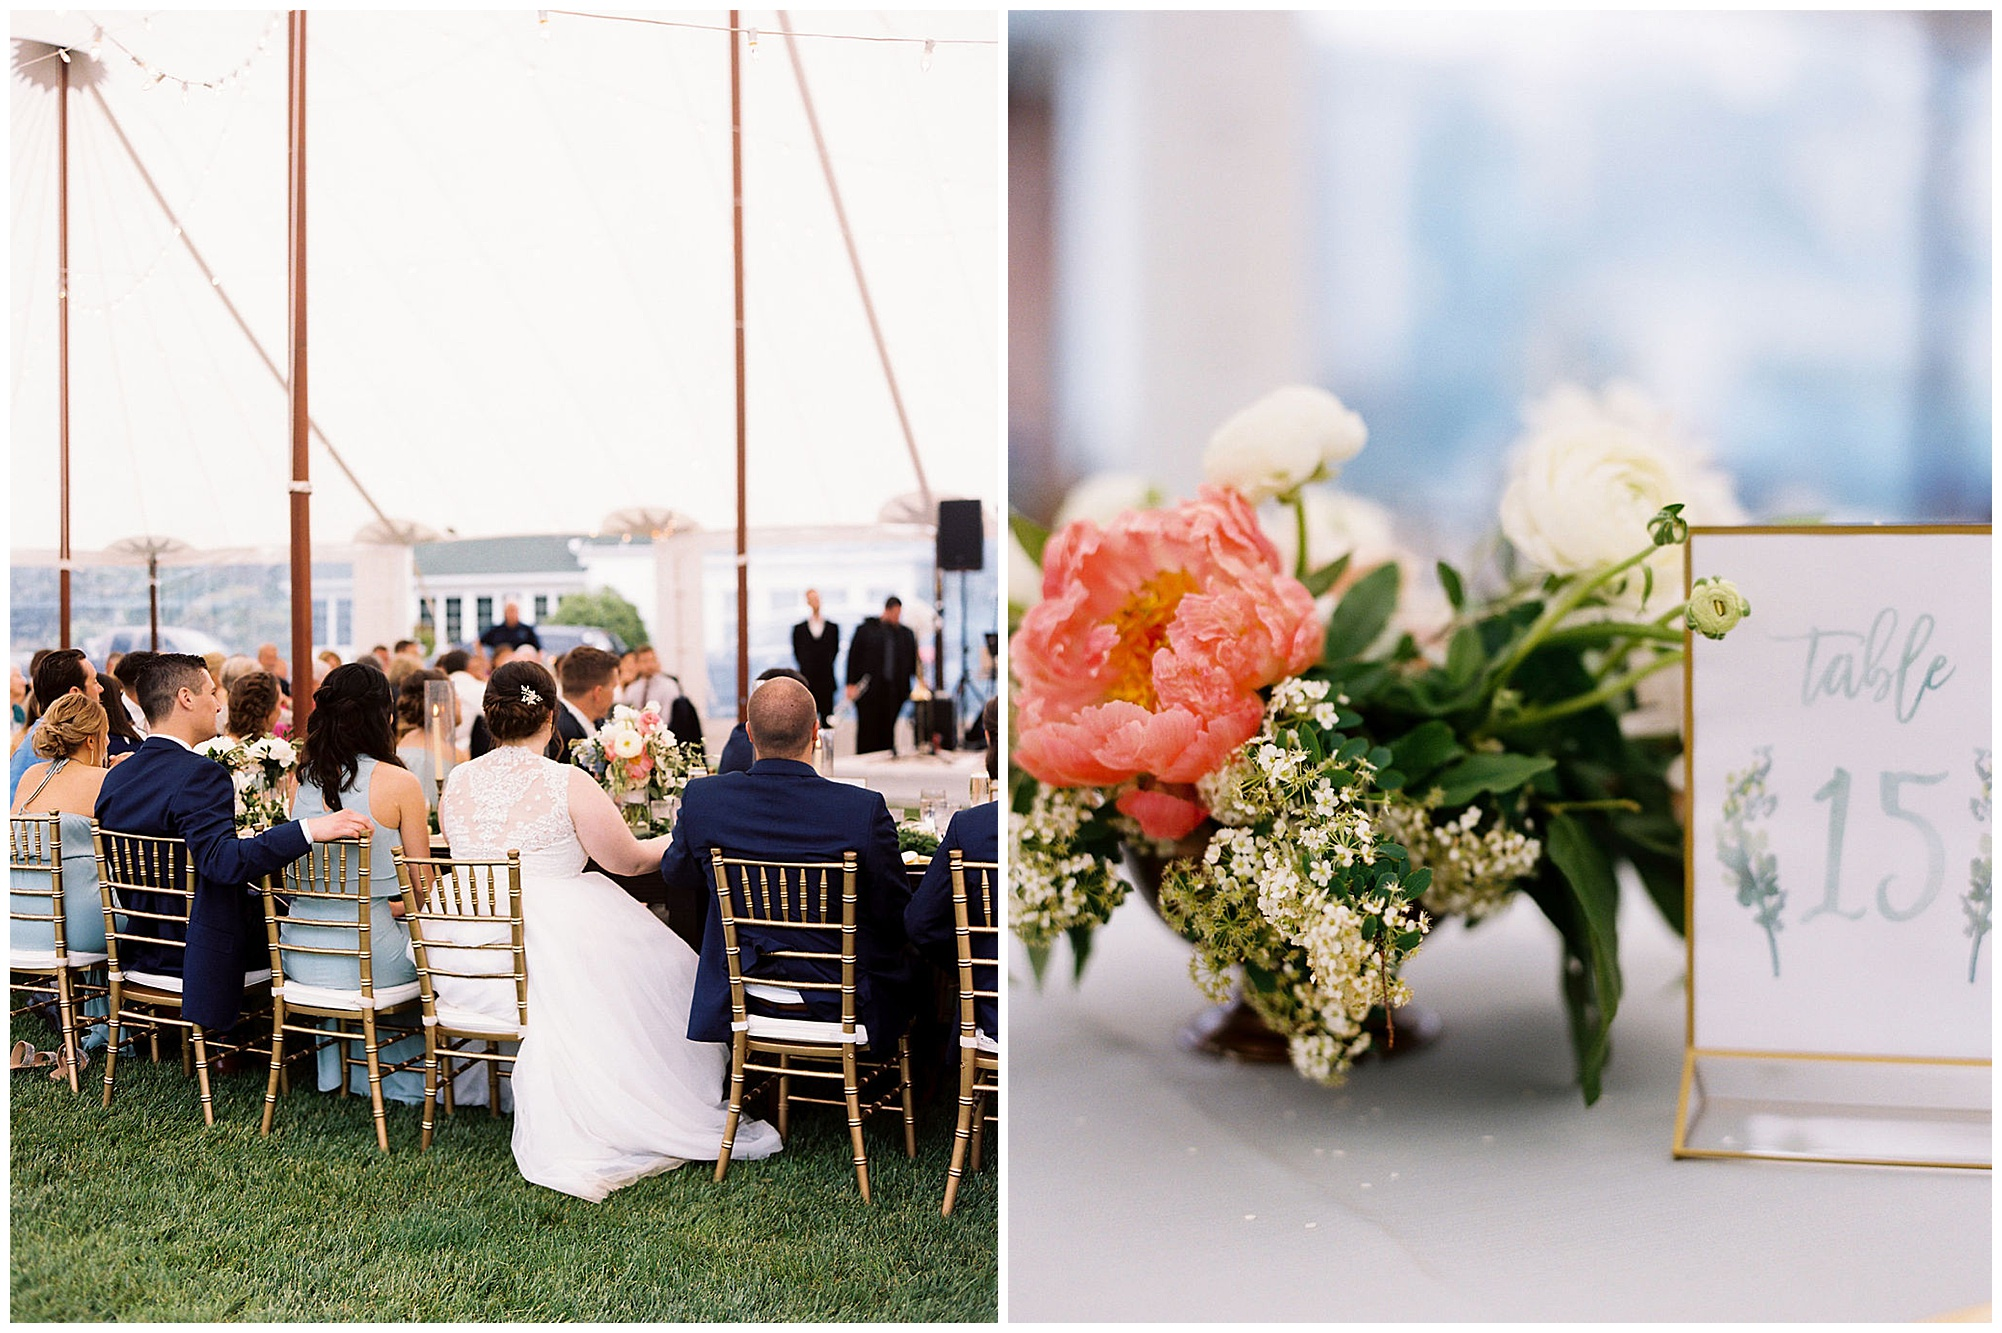 classic, timeless, modern, romantic wedding inspiration at inn at huntingfield wedding on maryland eastern shore. pink peonies floral arrangement, modern table number setting decor, and bride and groom at rainy day reception